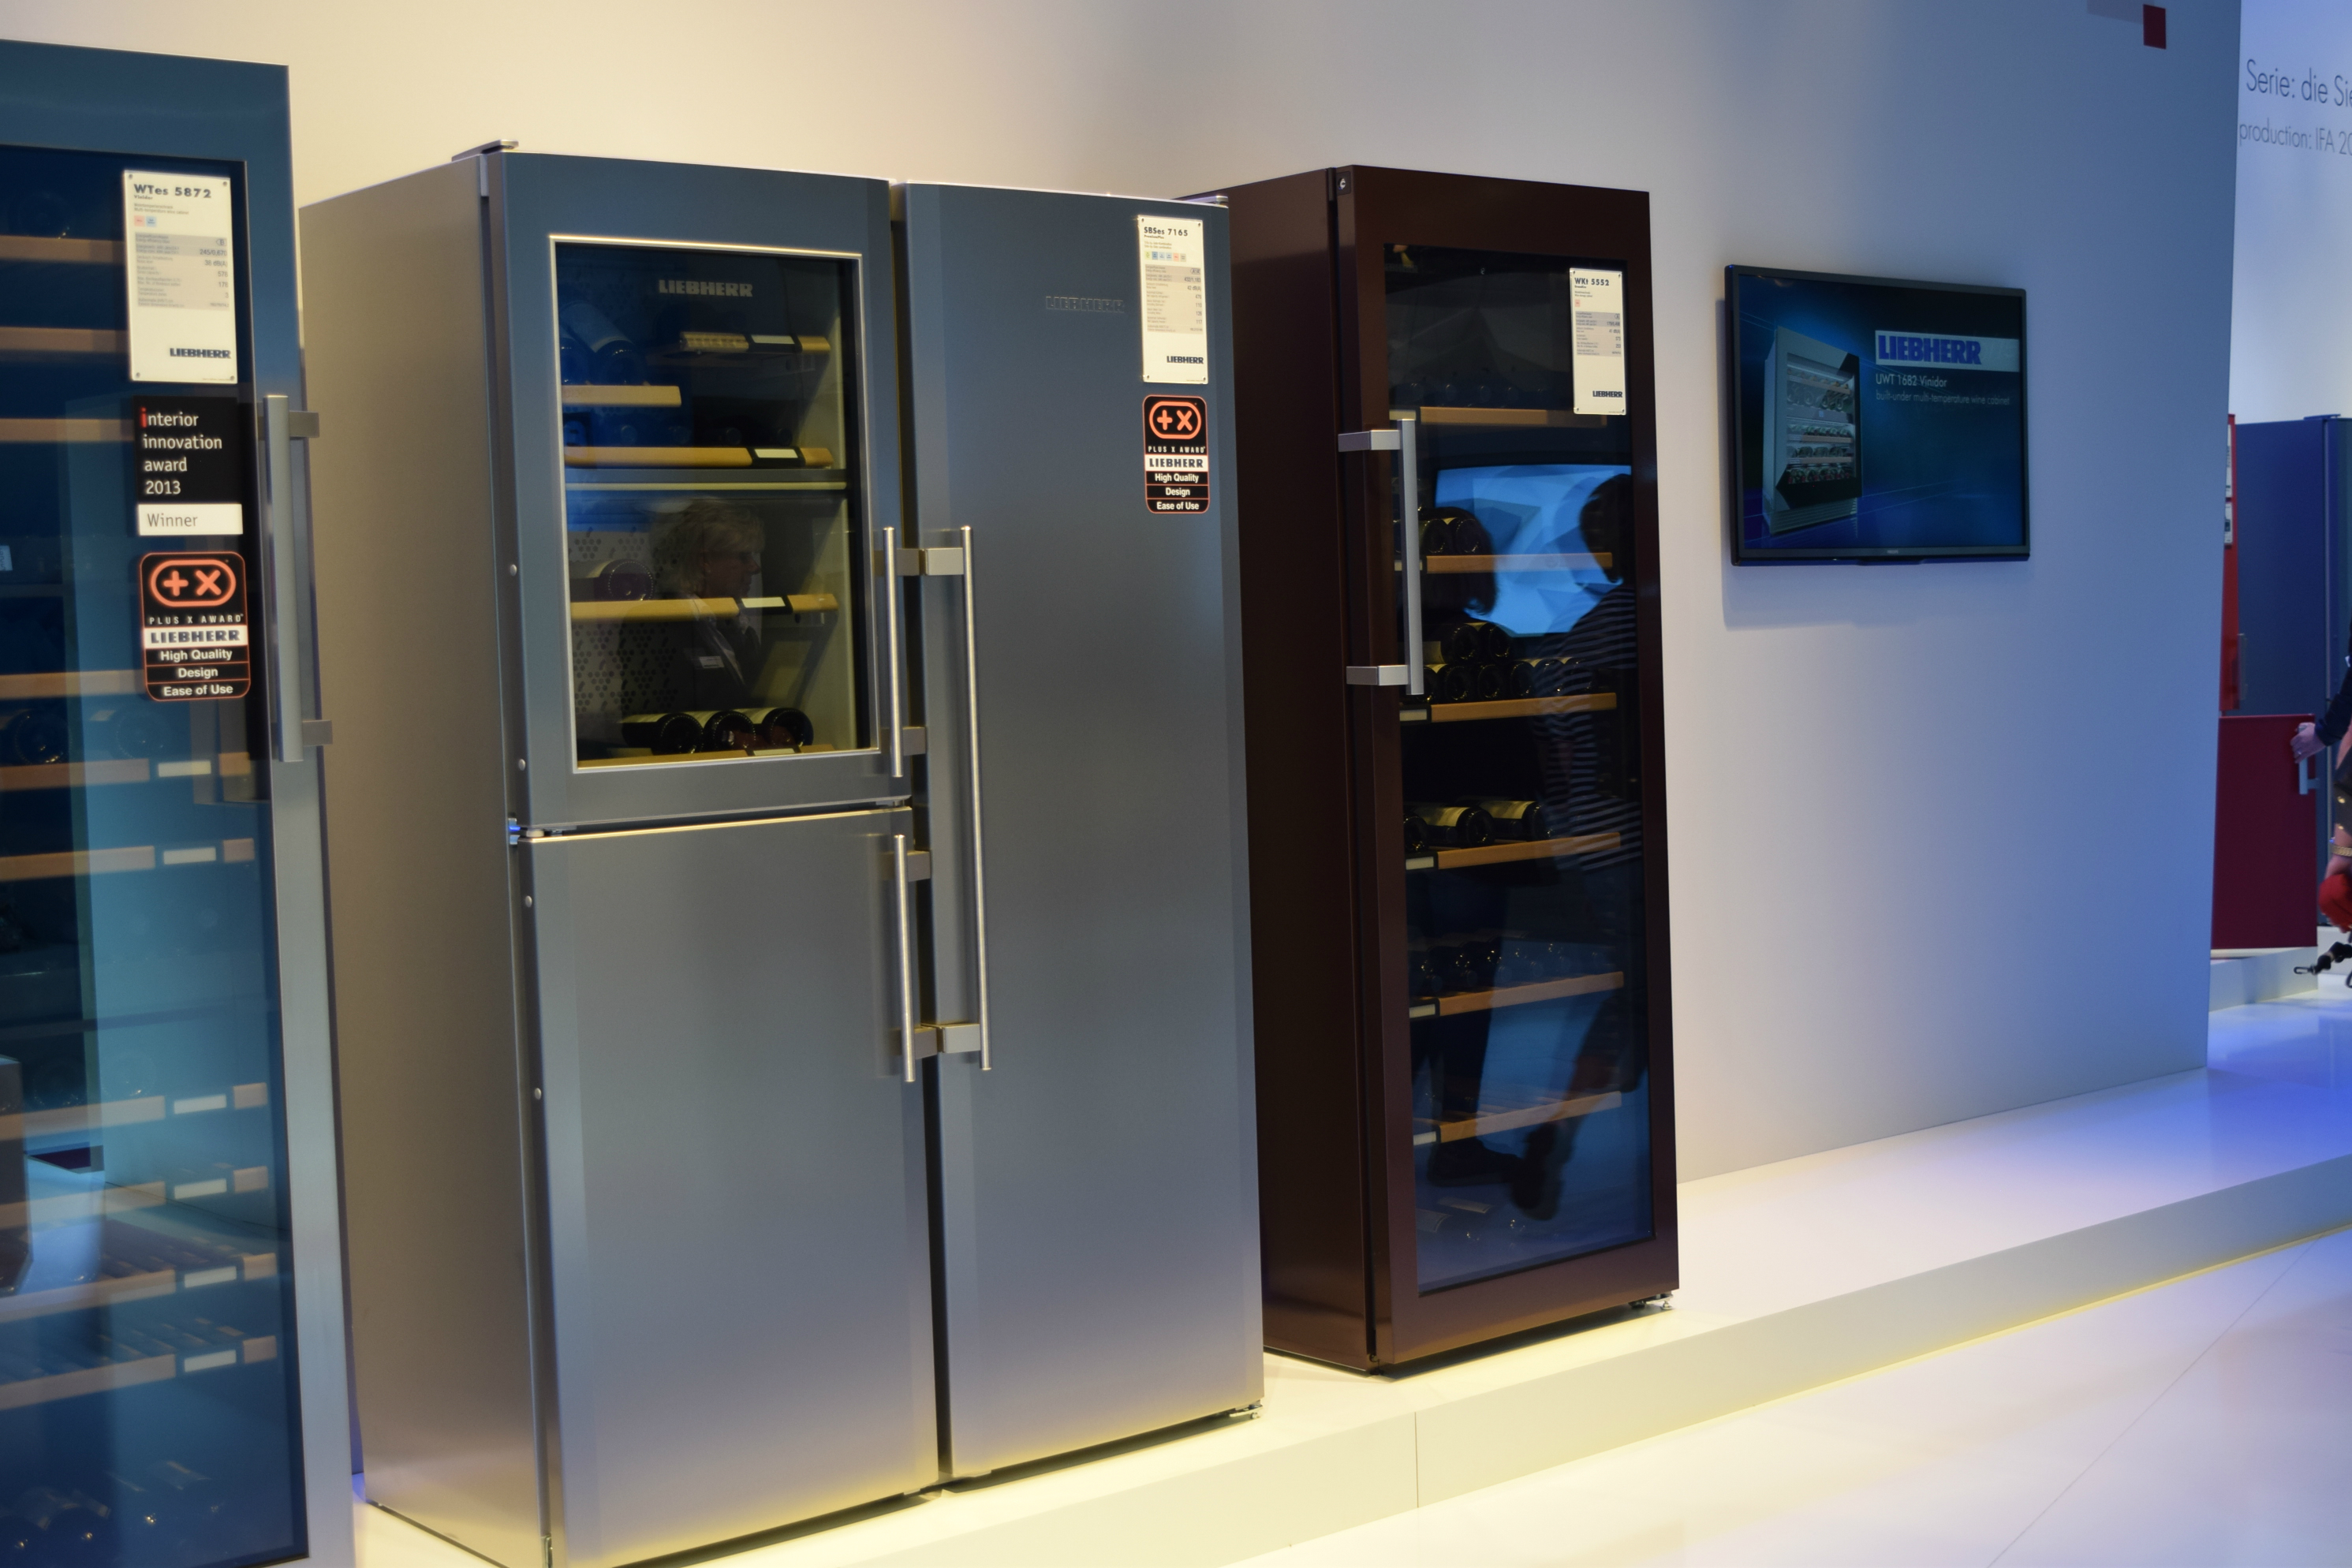 Liebherr put a wine fridge in a regular fridge. Brilliant.